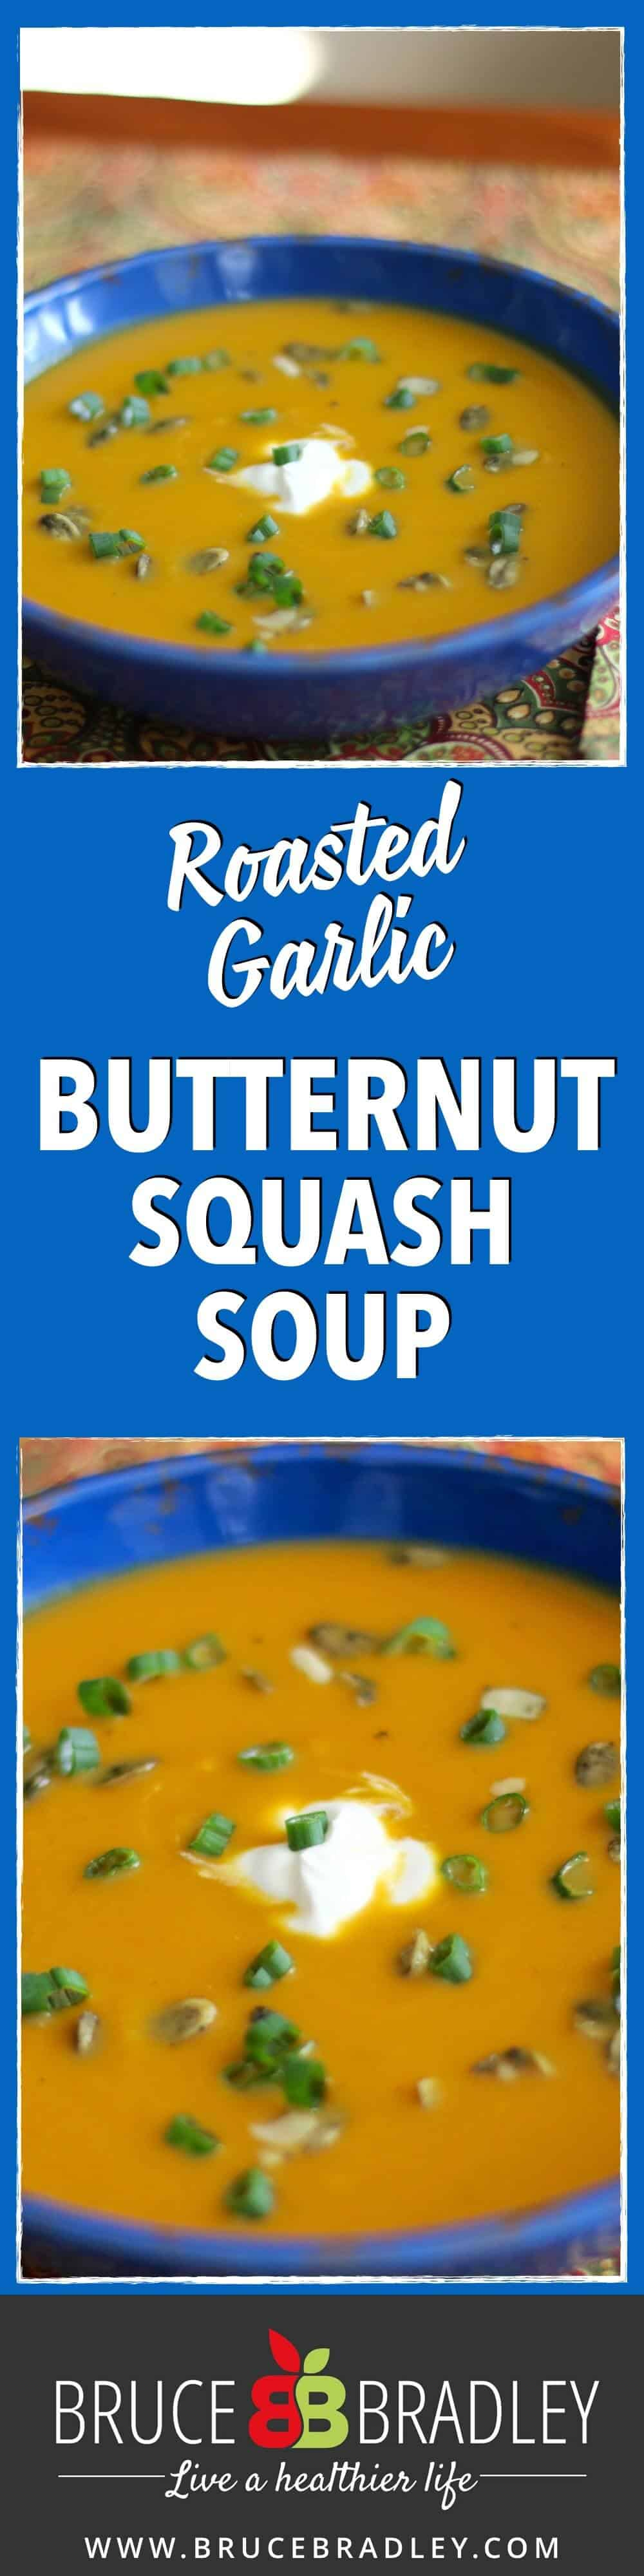 This amazing butternut squash soup brings together roasted garlic, leeks, apples, ginger, and maple syrup for the most delicious bowl of soup I've tasted!